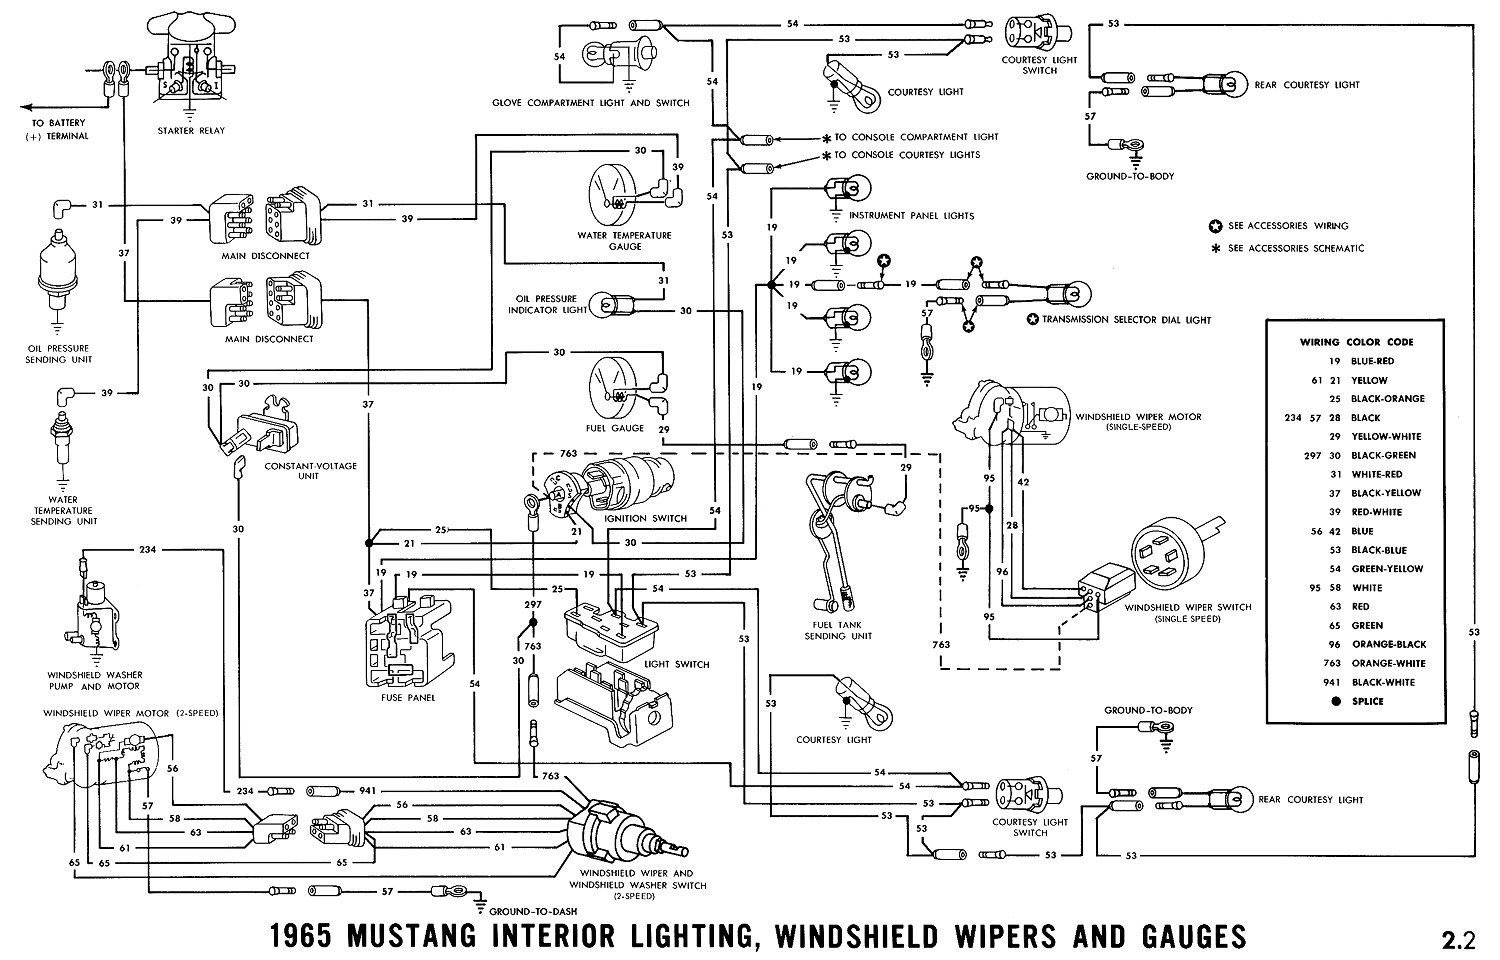 1965g 1965 mustang wiring diagrams average joe restoration 66 mustang ignition wiring diagram at soozxer.org